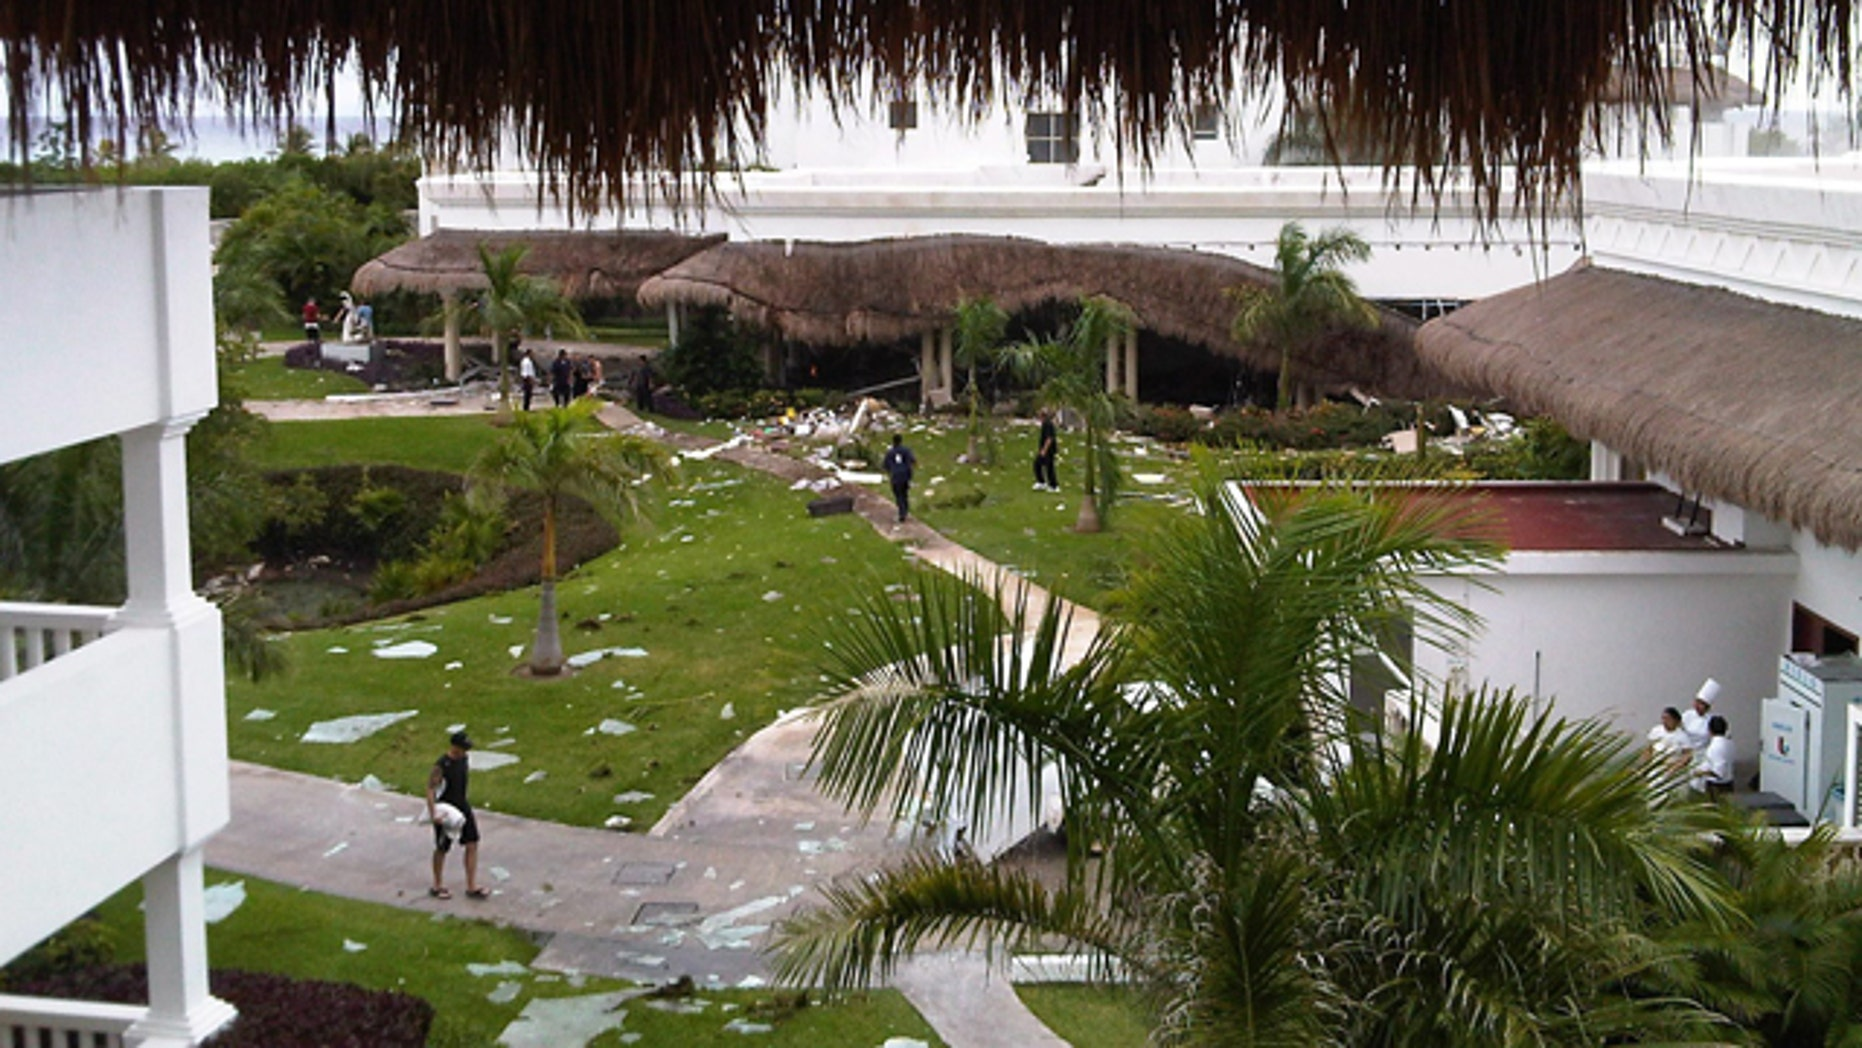 In this photo released by 570 News via The Canadian Press, debris is seen scattered on the lawn of a resort hotel in Playa del Carmen, Mexico, Sunday Nov. 14, 2010.  According to the Attorney General of the state of Quintana Roo, Francisco Alor, a blast at the hotel on Mexico's Caribbean coast, apparently caused by an accumulation of gas, has killed six people and left 15 wounded. (AP Photo/Pete Travers, 570 News via The Canadian Press)